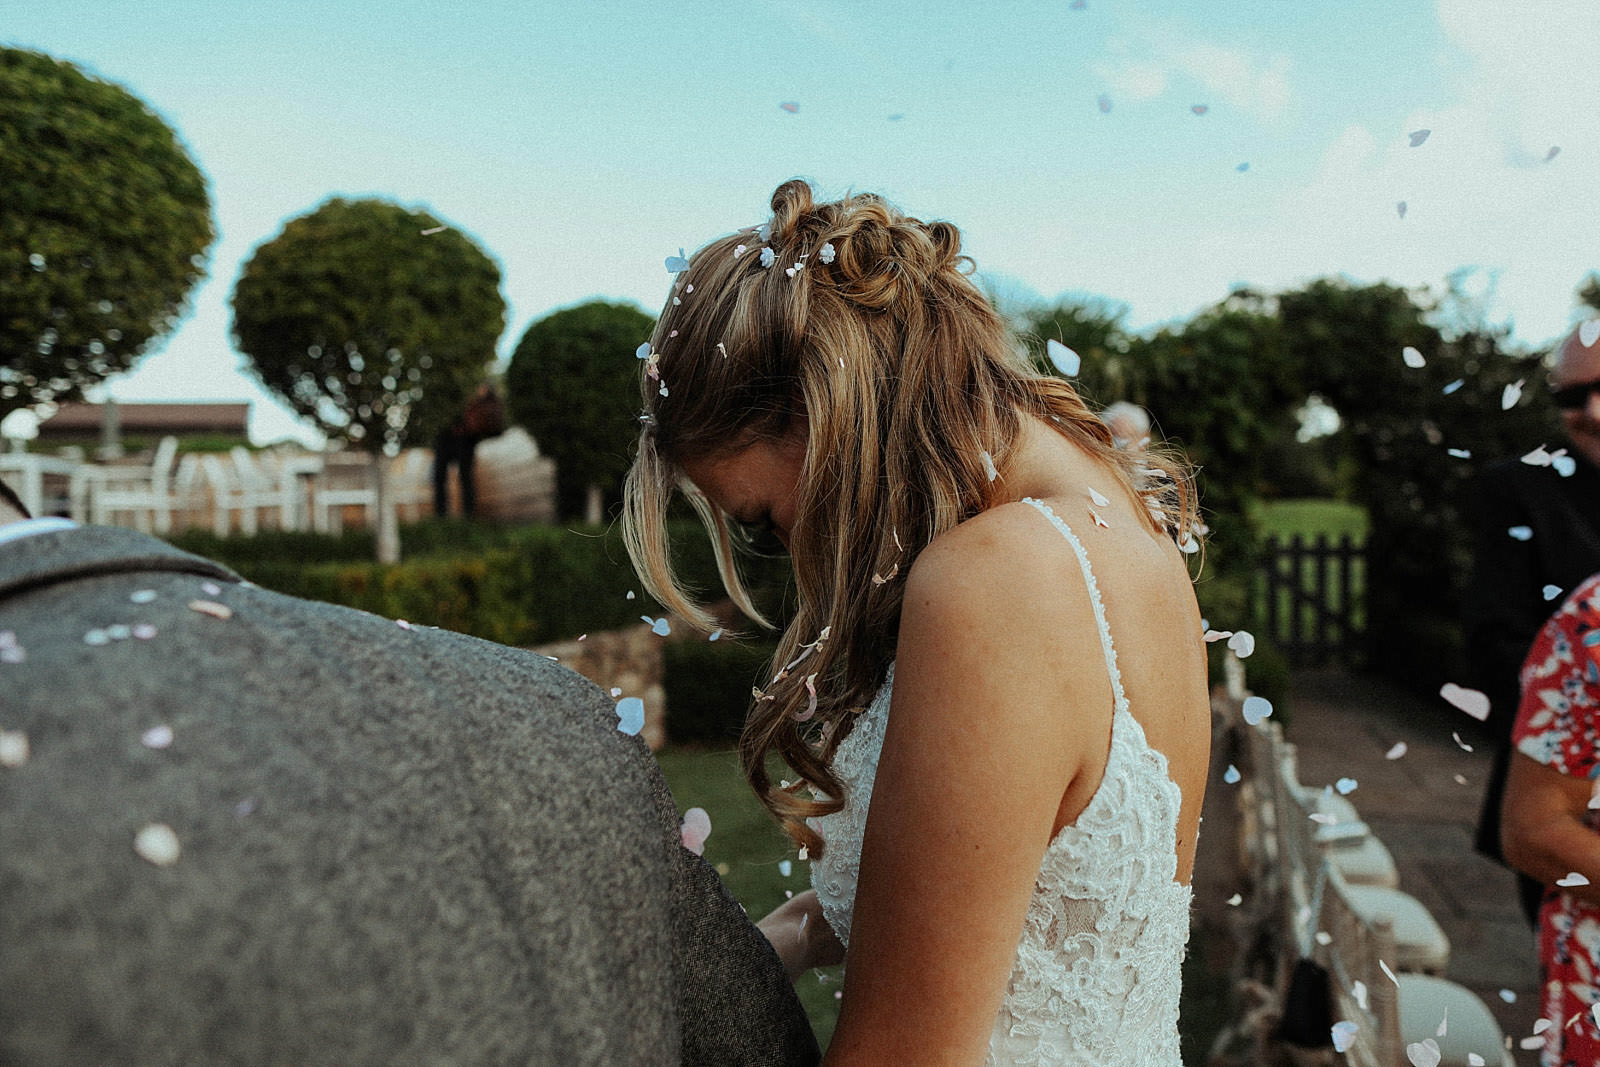 brides hair covered in confetti